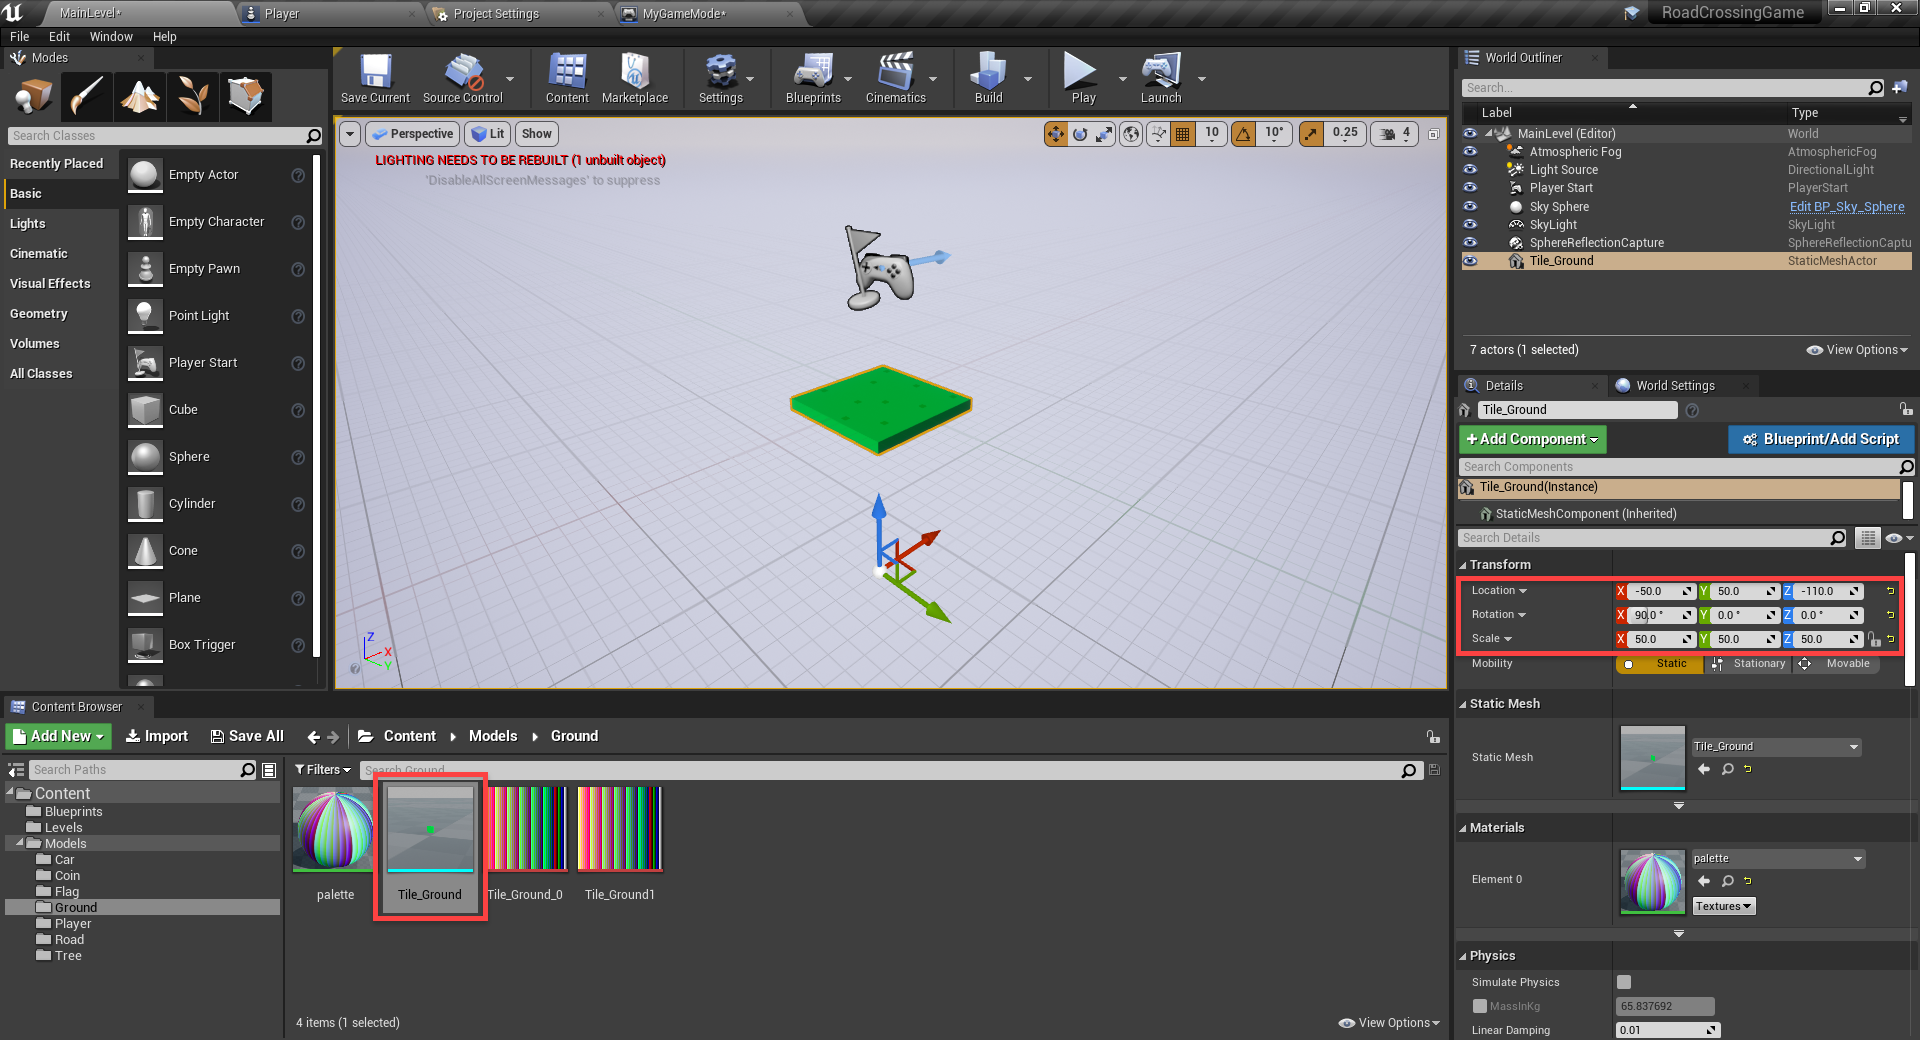 Unreal Engine with tile mesh added for level